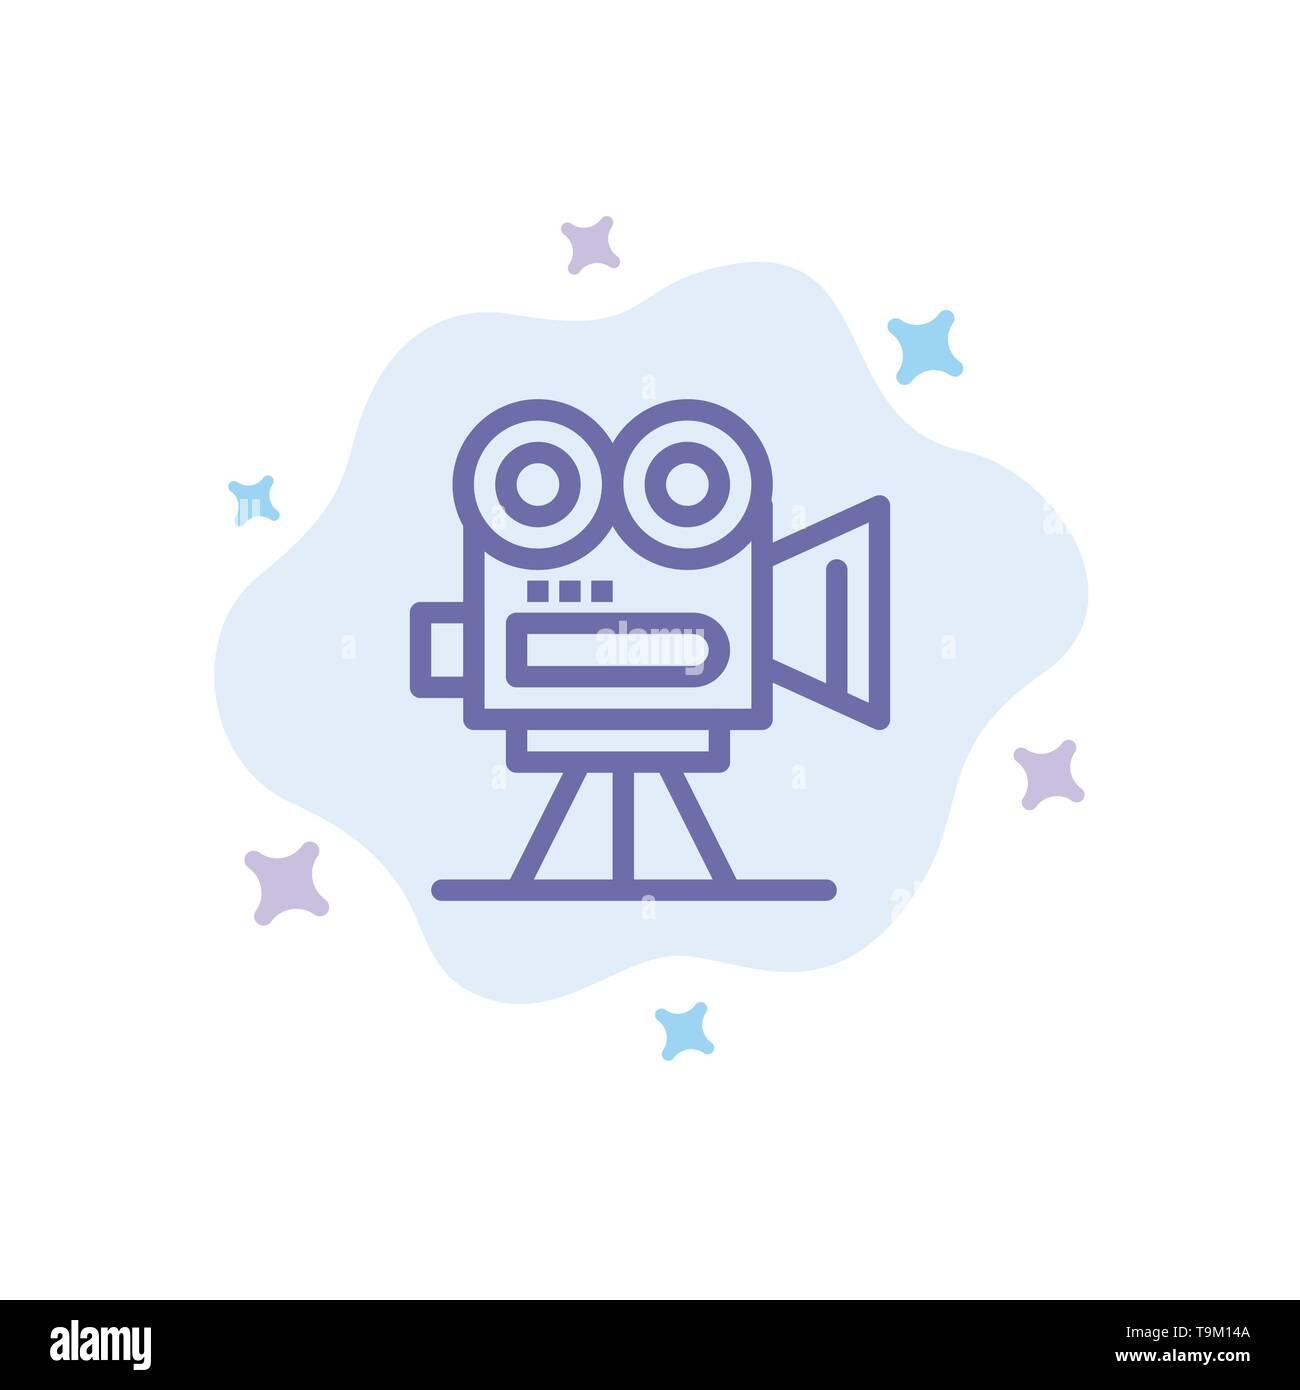 Camera, Capture, Film, Movie, Professional Blue Icon on Abstract Cloud Background - Stock Image